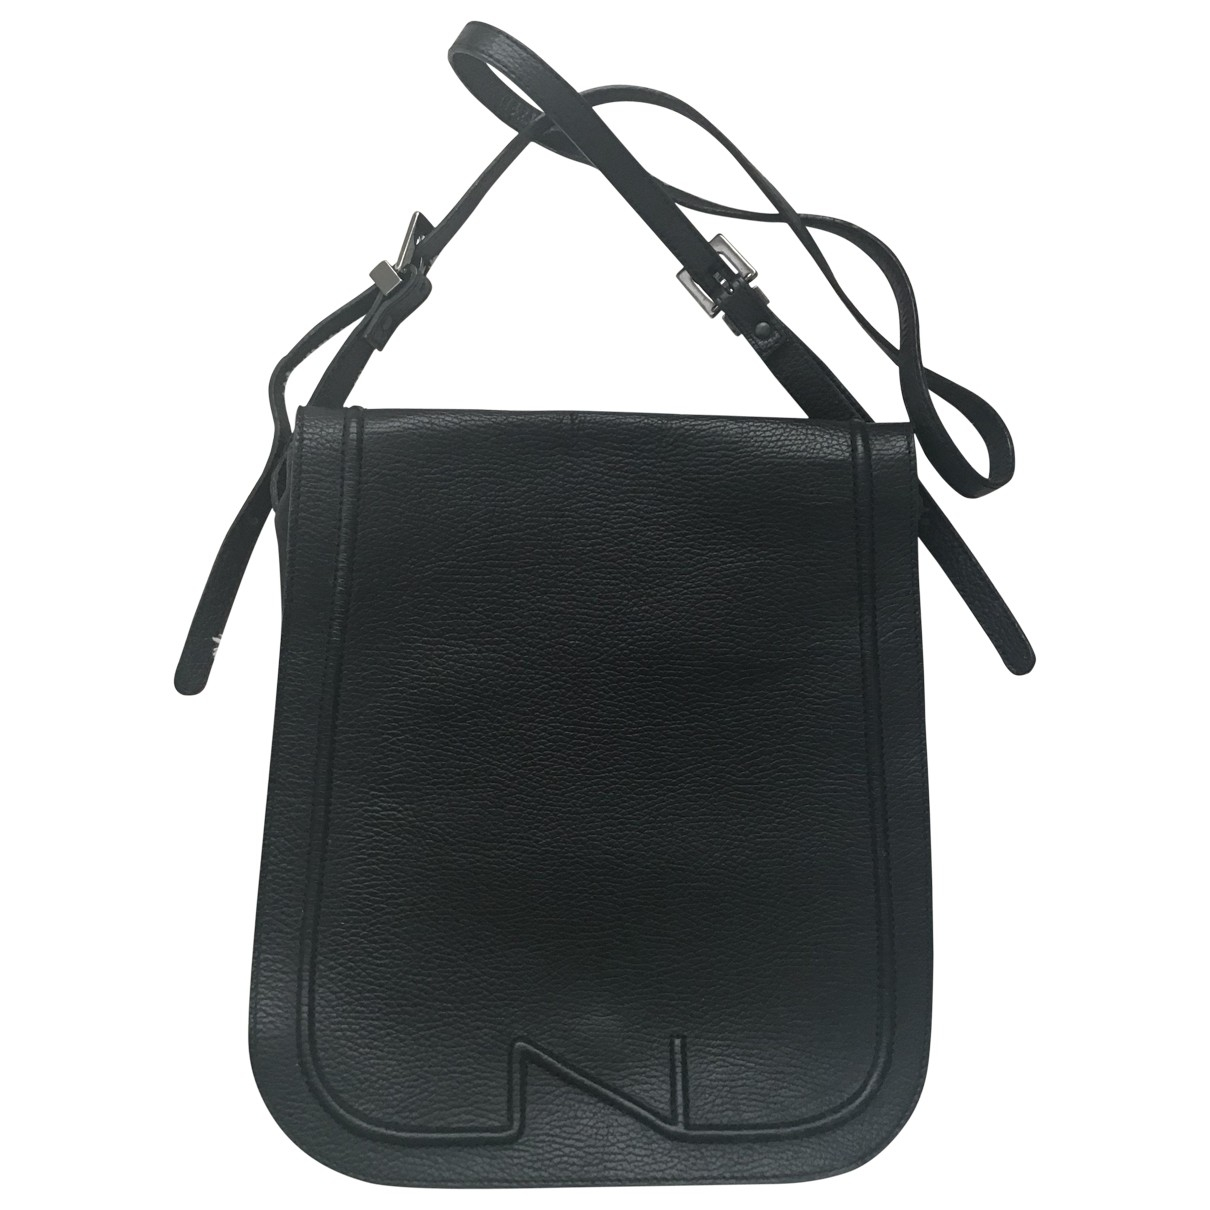 Nathan-baume \N Black Leather handbag for Women \N